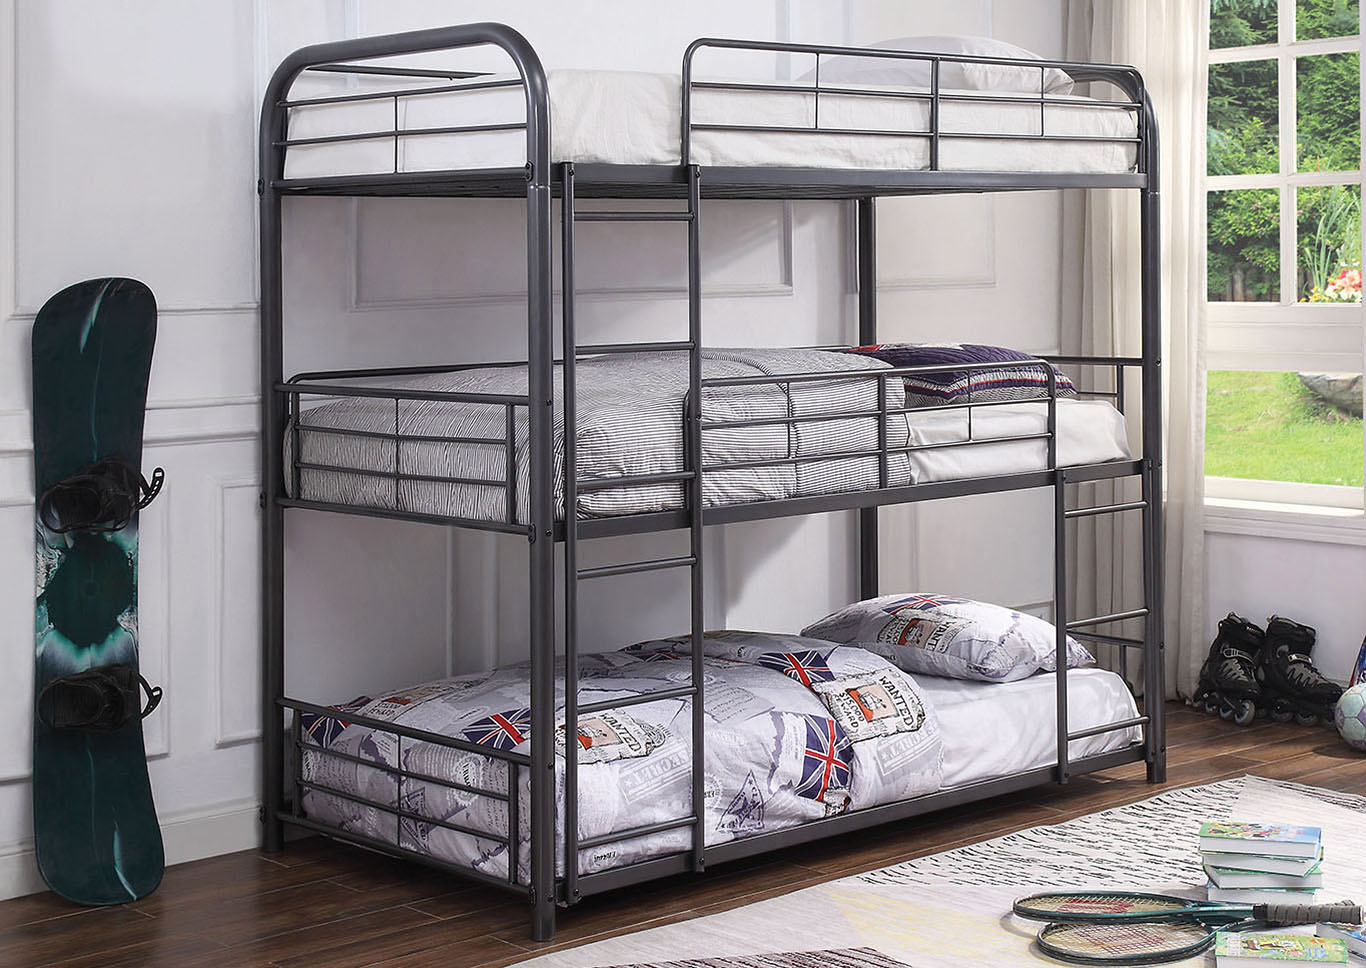 Cairo Gunmetal Bunk Bed - Triple Twin,Acme